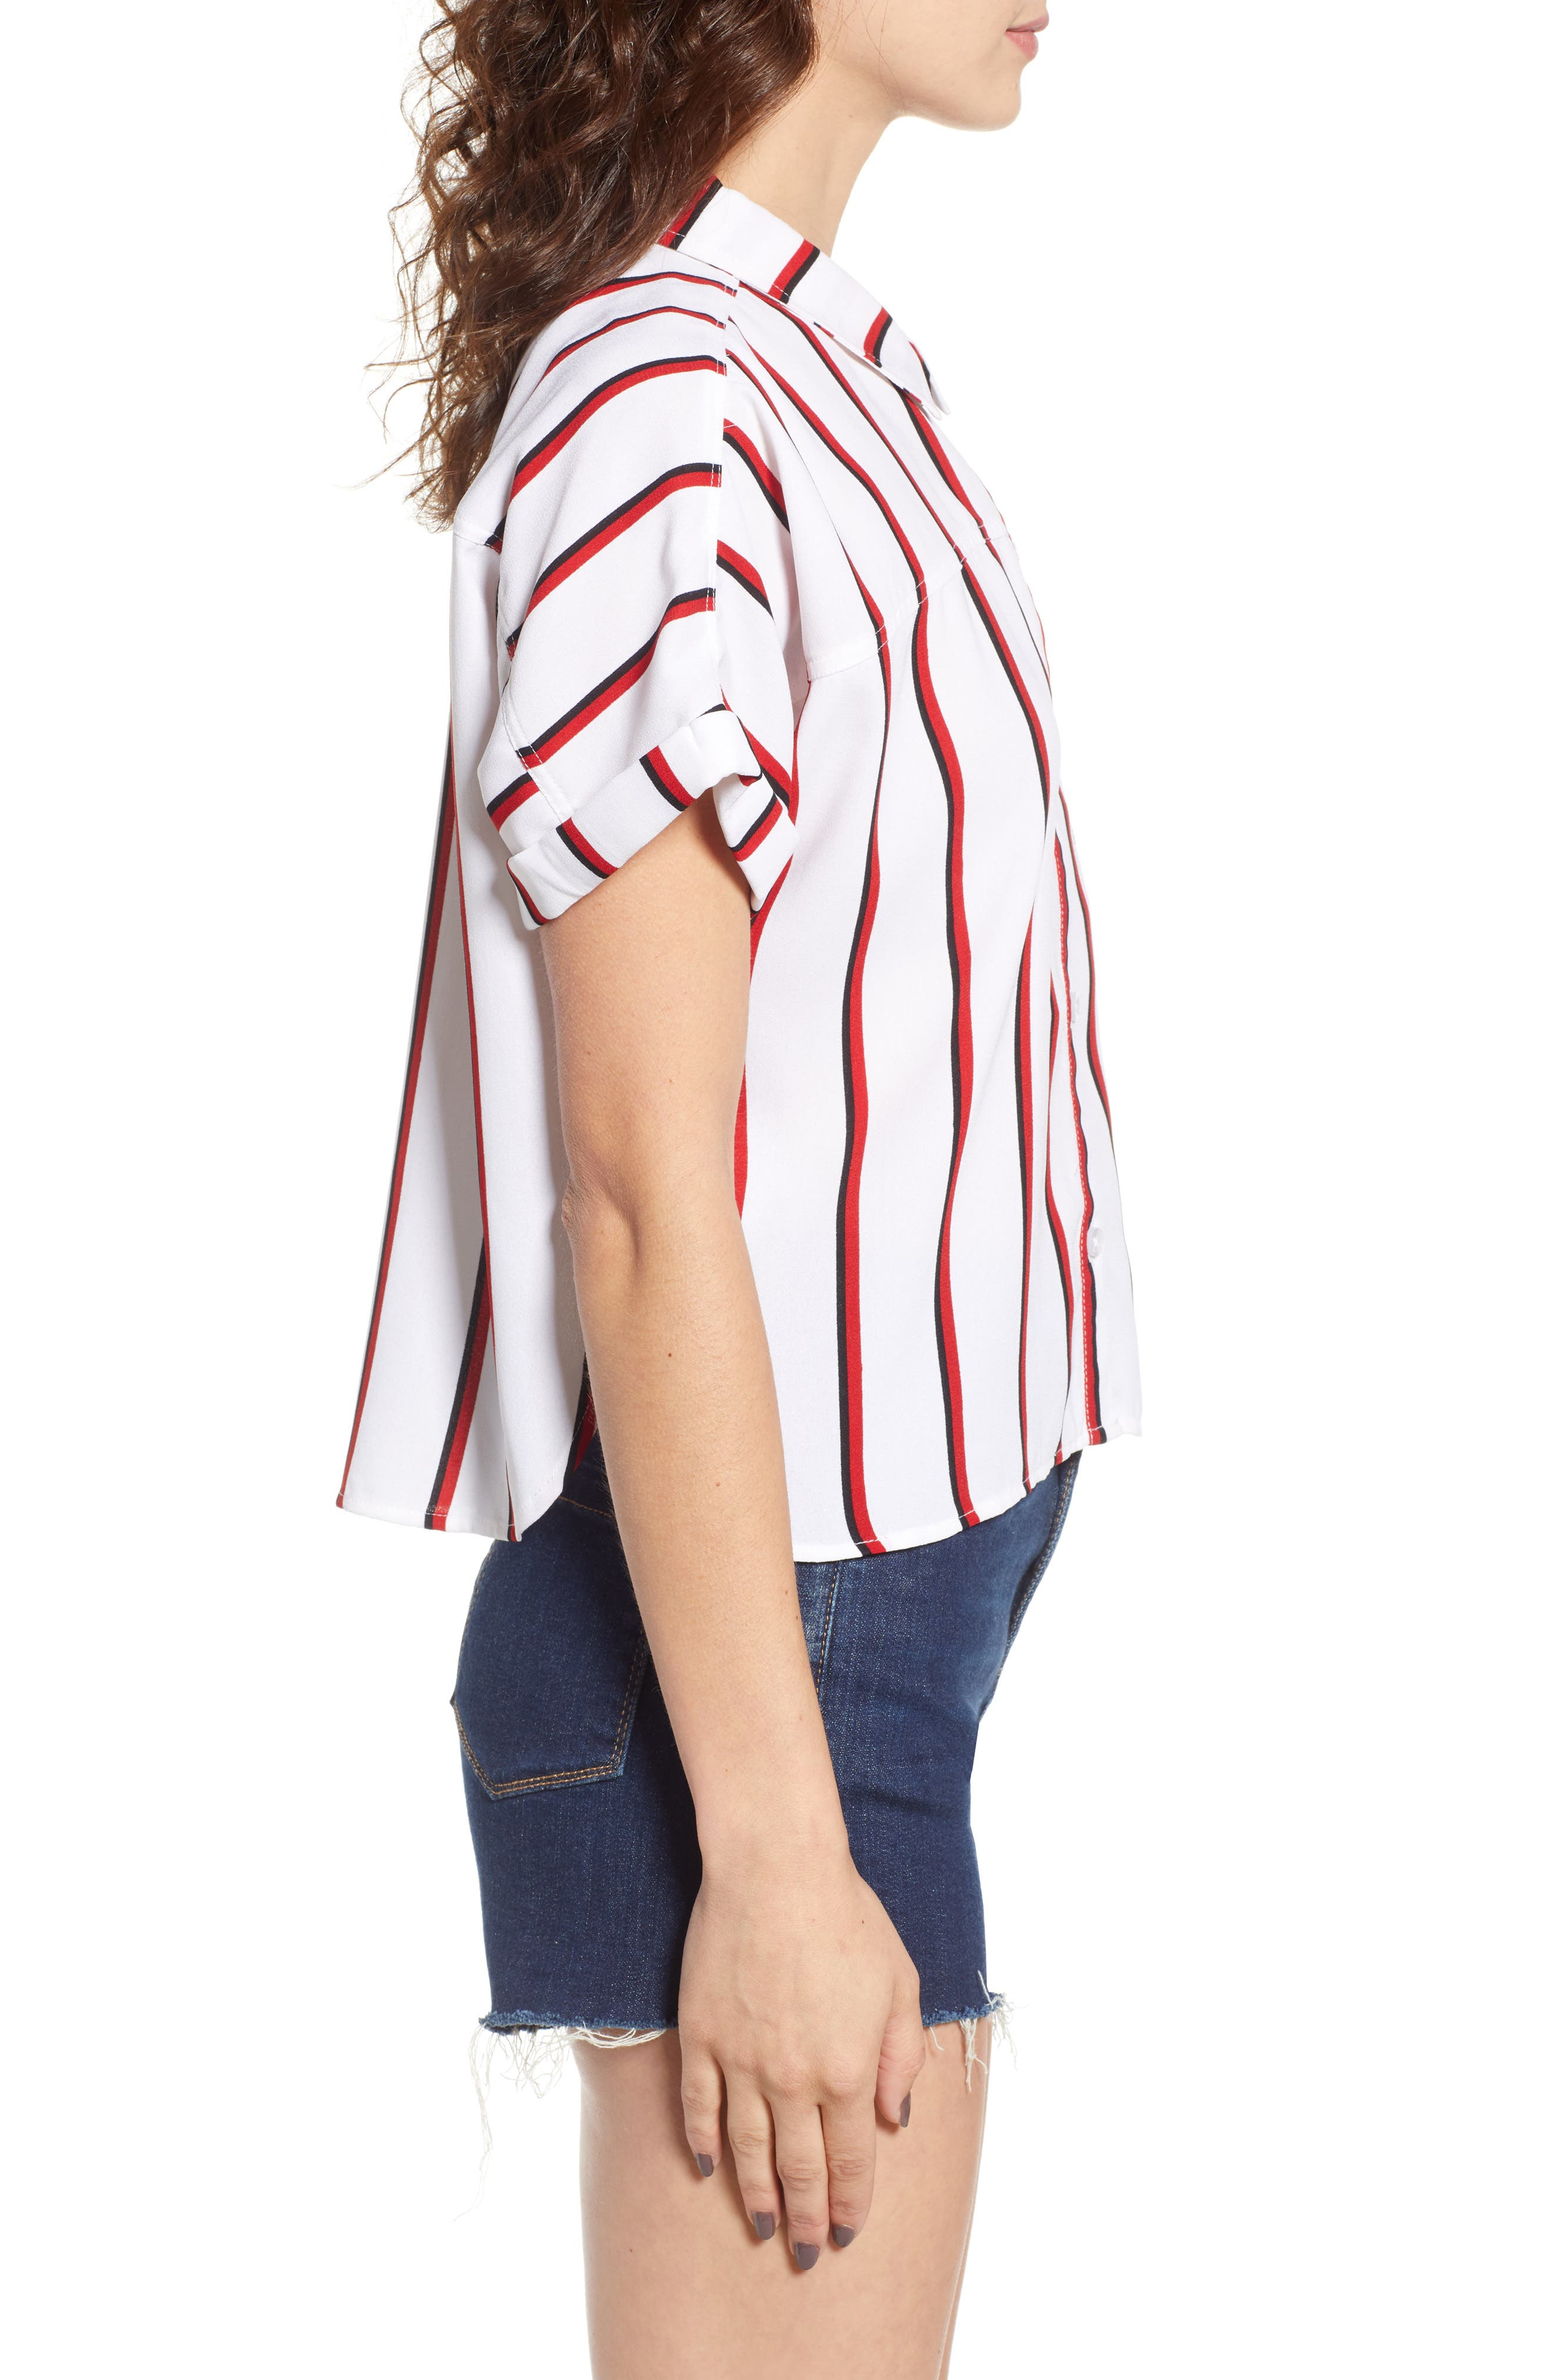 Counting Moons Stripe Top,                             Alternate thumbnail 3, color,                             Chili Red